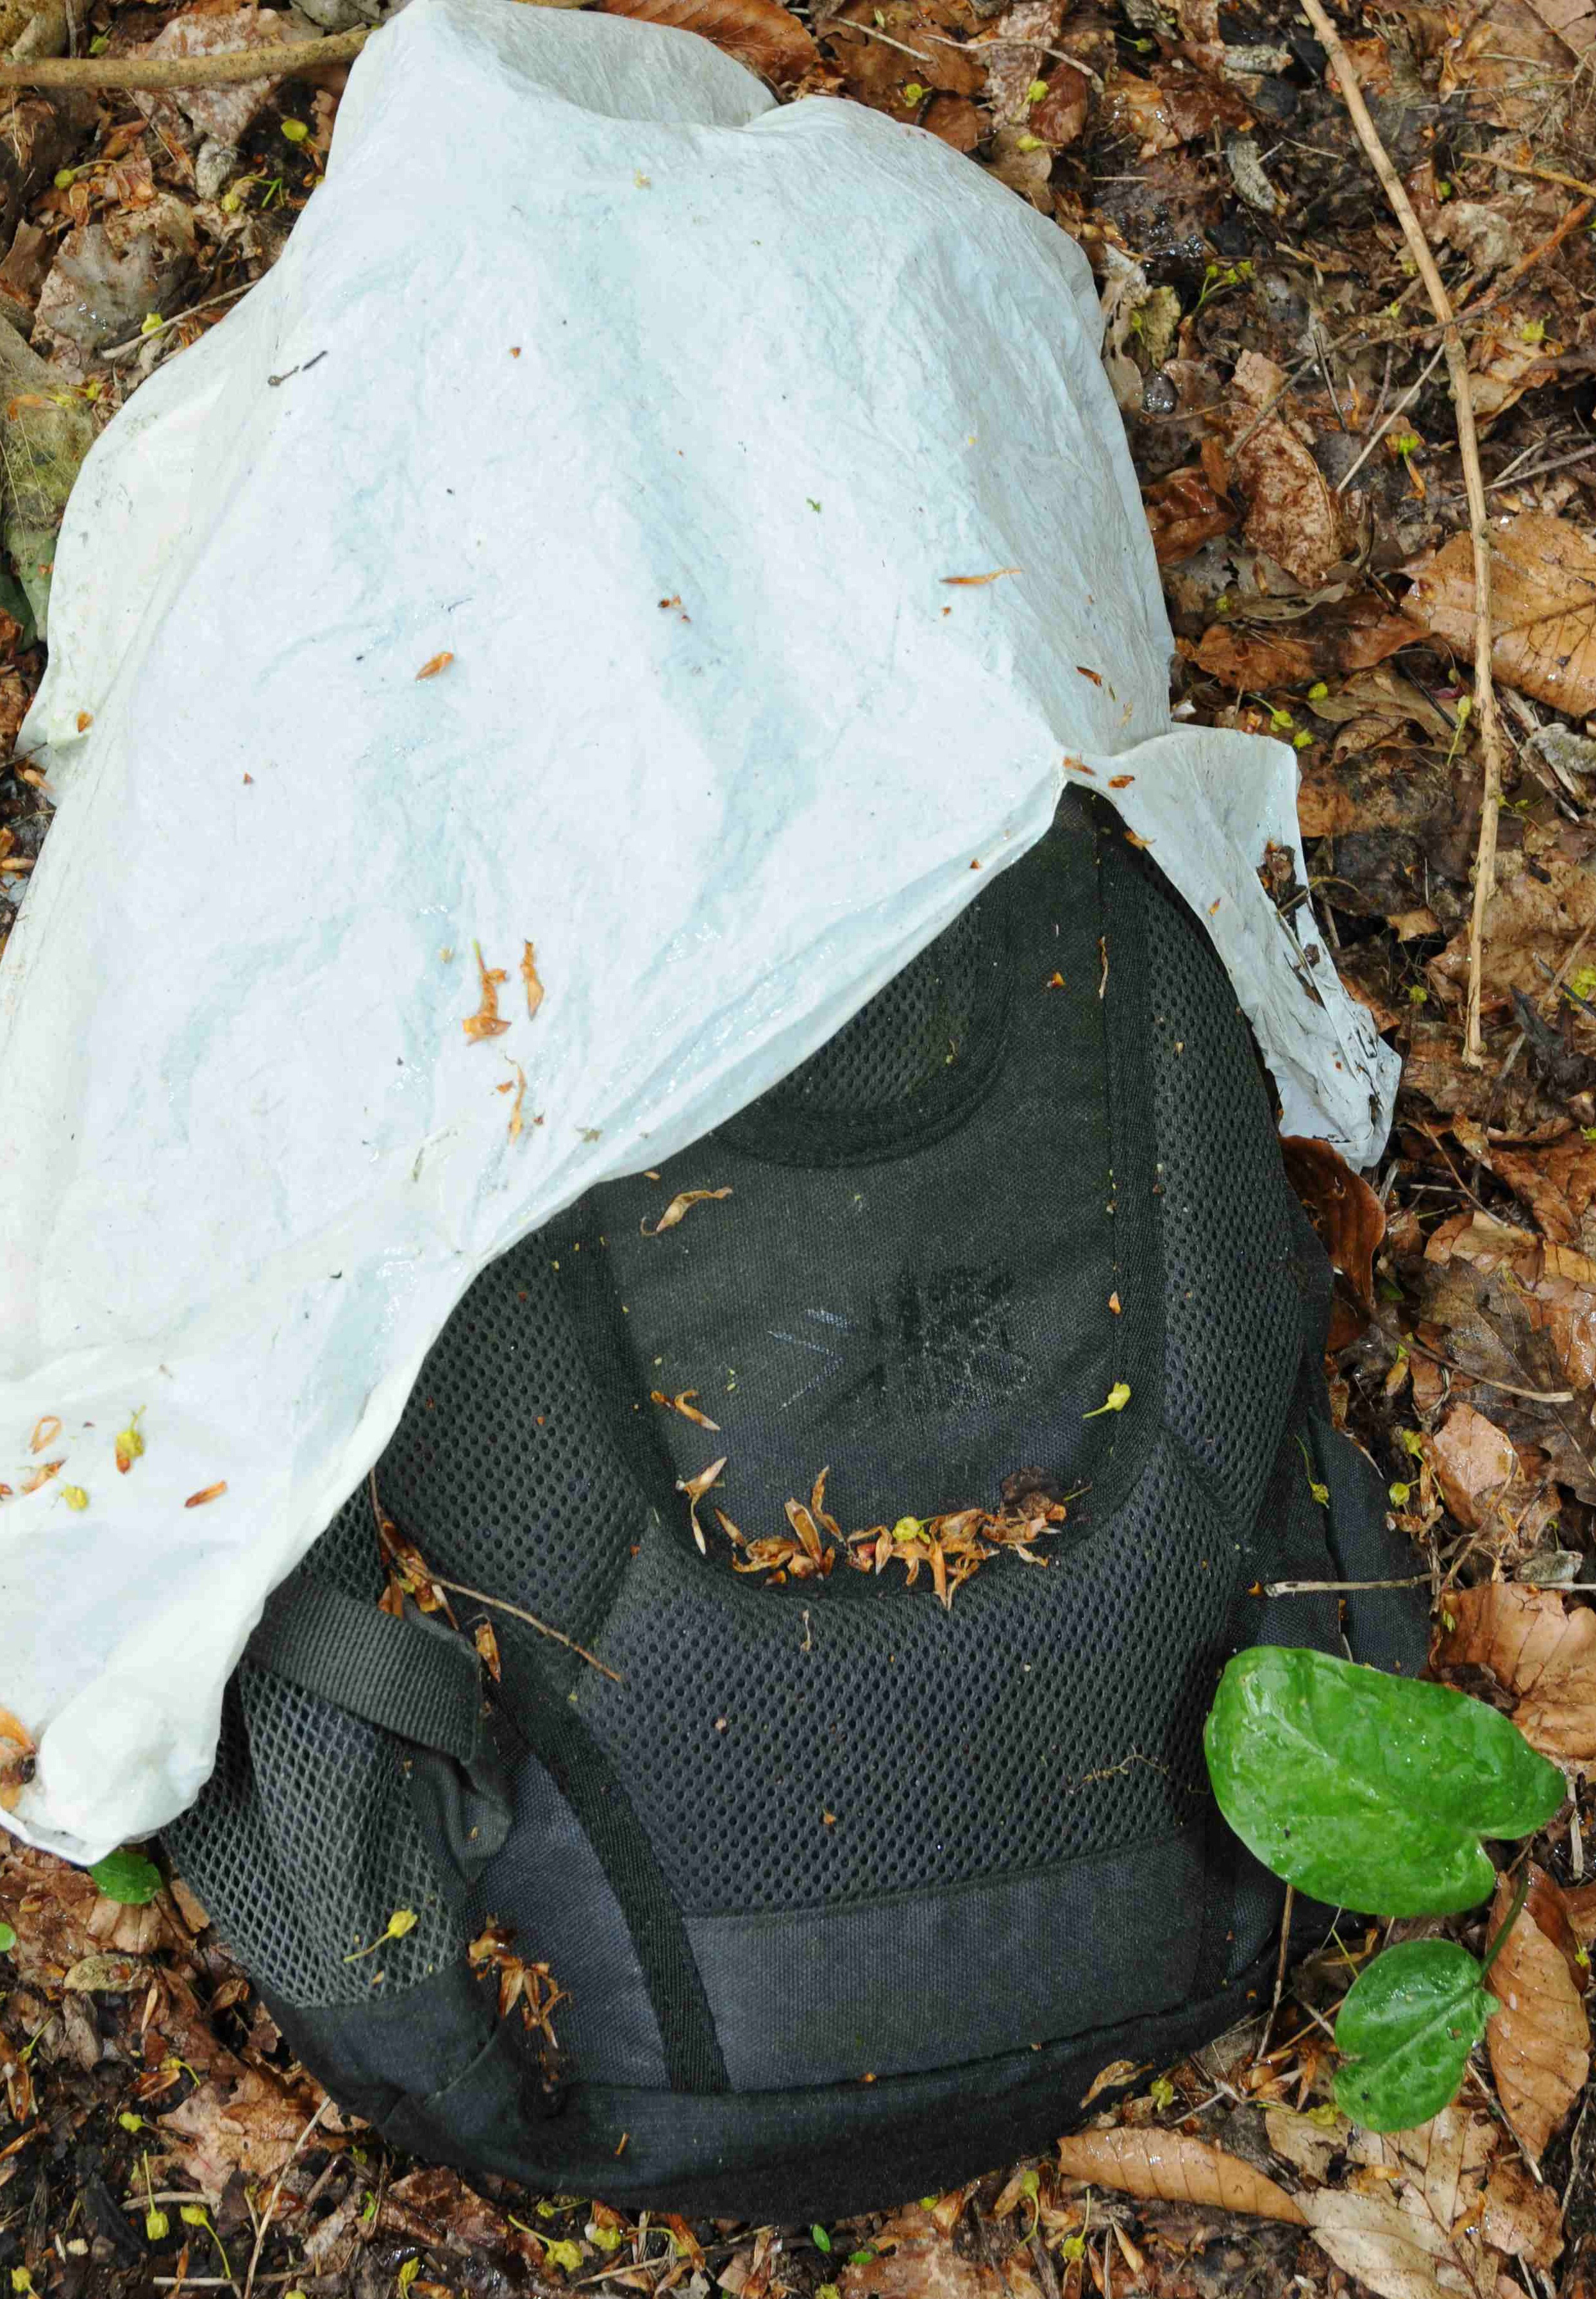 A Karrimor rucksack covered with a white plastic bag was recovered from the scene (Gloucestershire Police/PA).